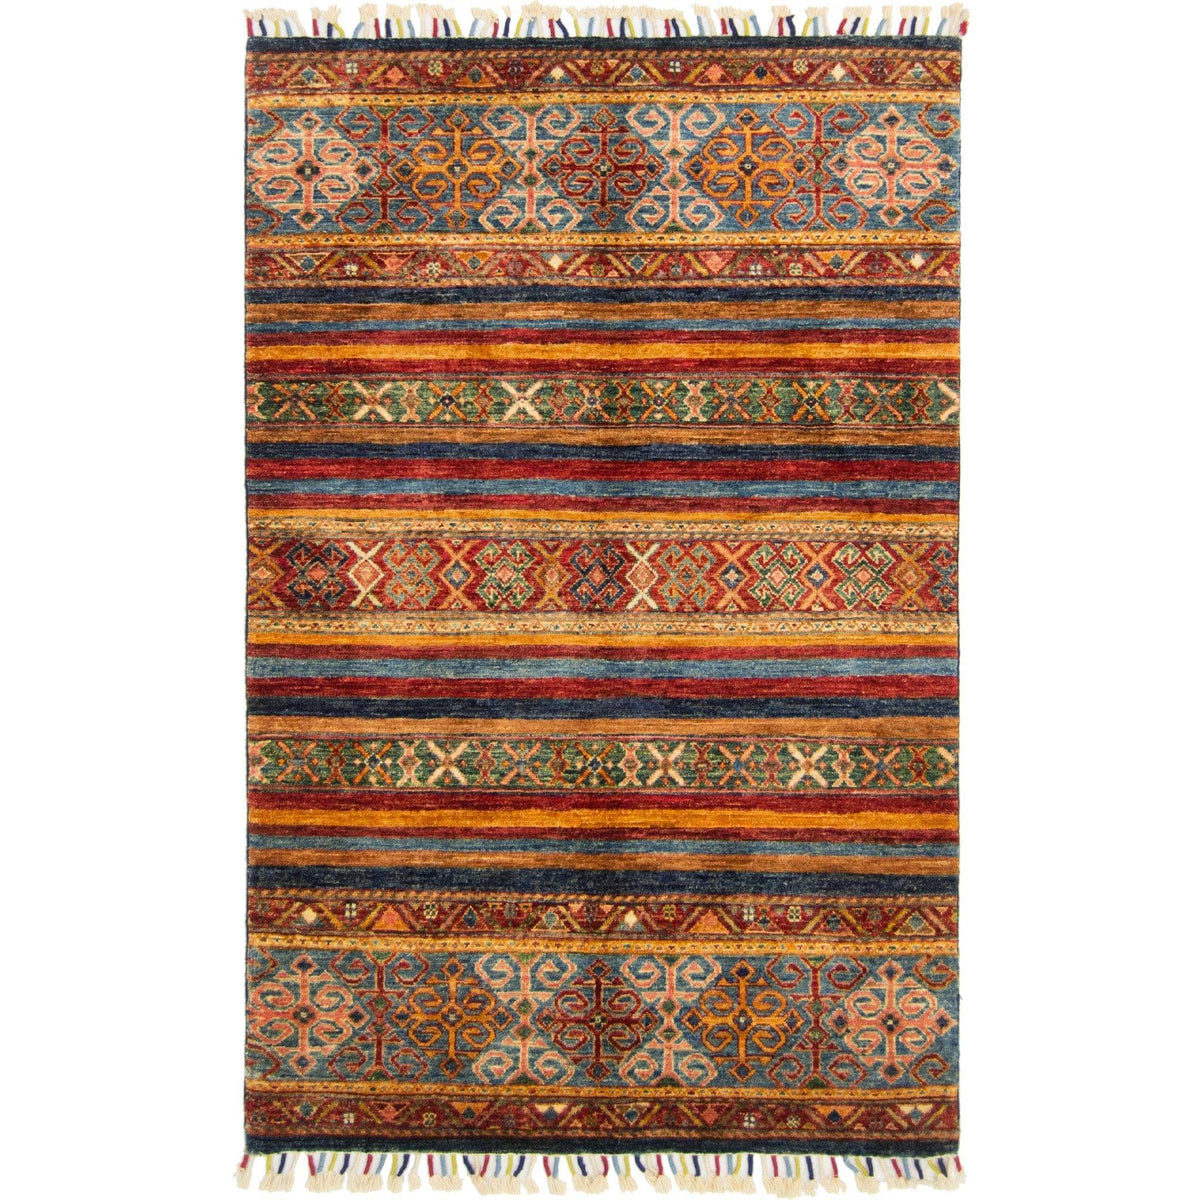 Hand-knotted Tribal Khorjin Rug 102cm x 157cm Persian-Rug | House-of-Haghi | NewMarket | Auckland | NZ | Handmade Persian Rugs | Hand Knotted Persian Rugs